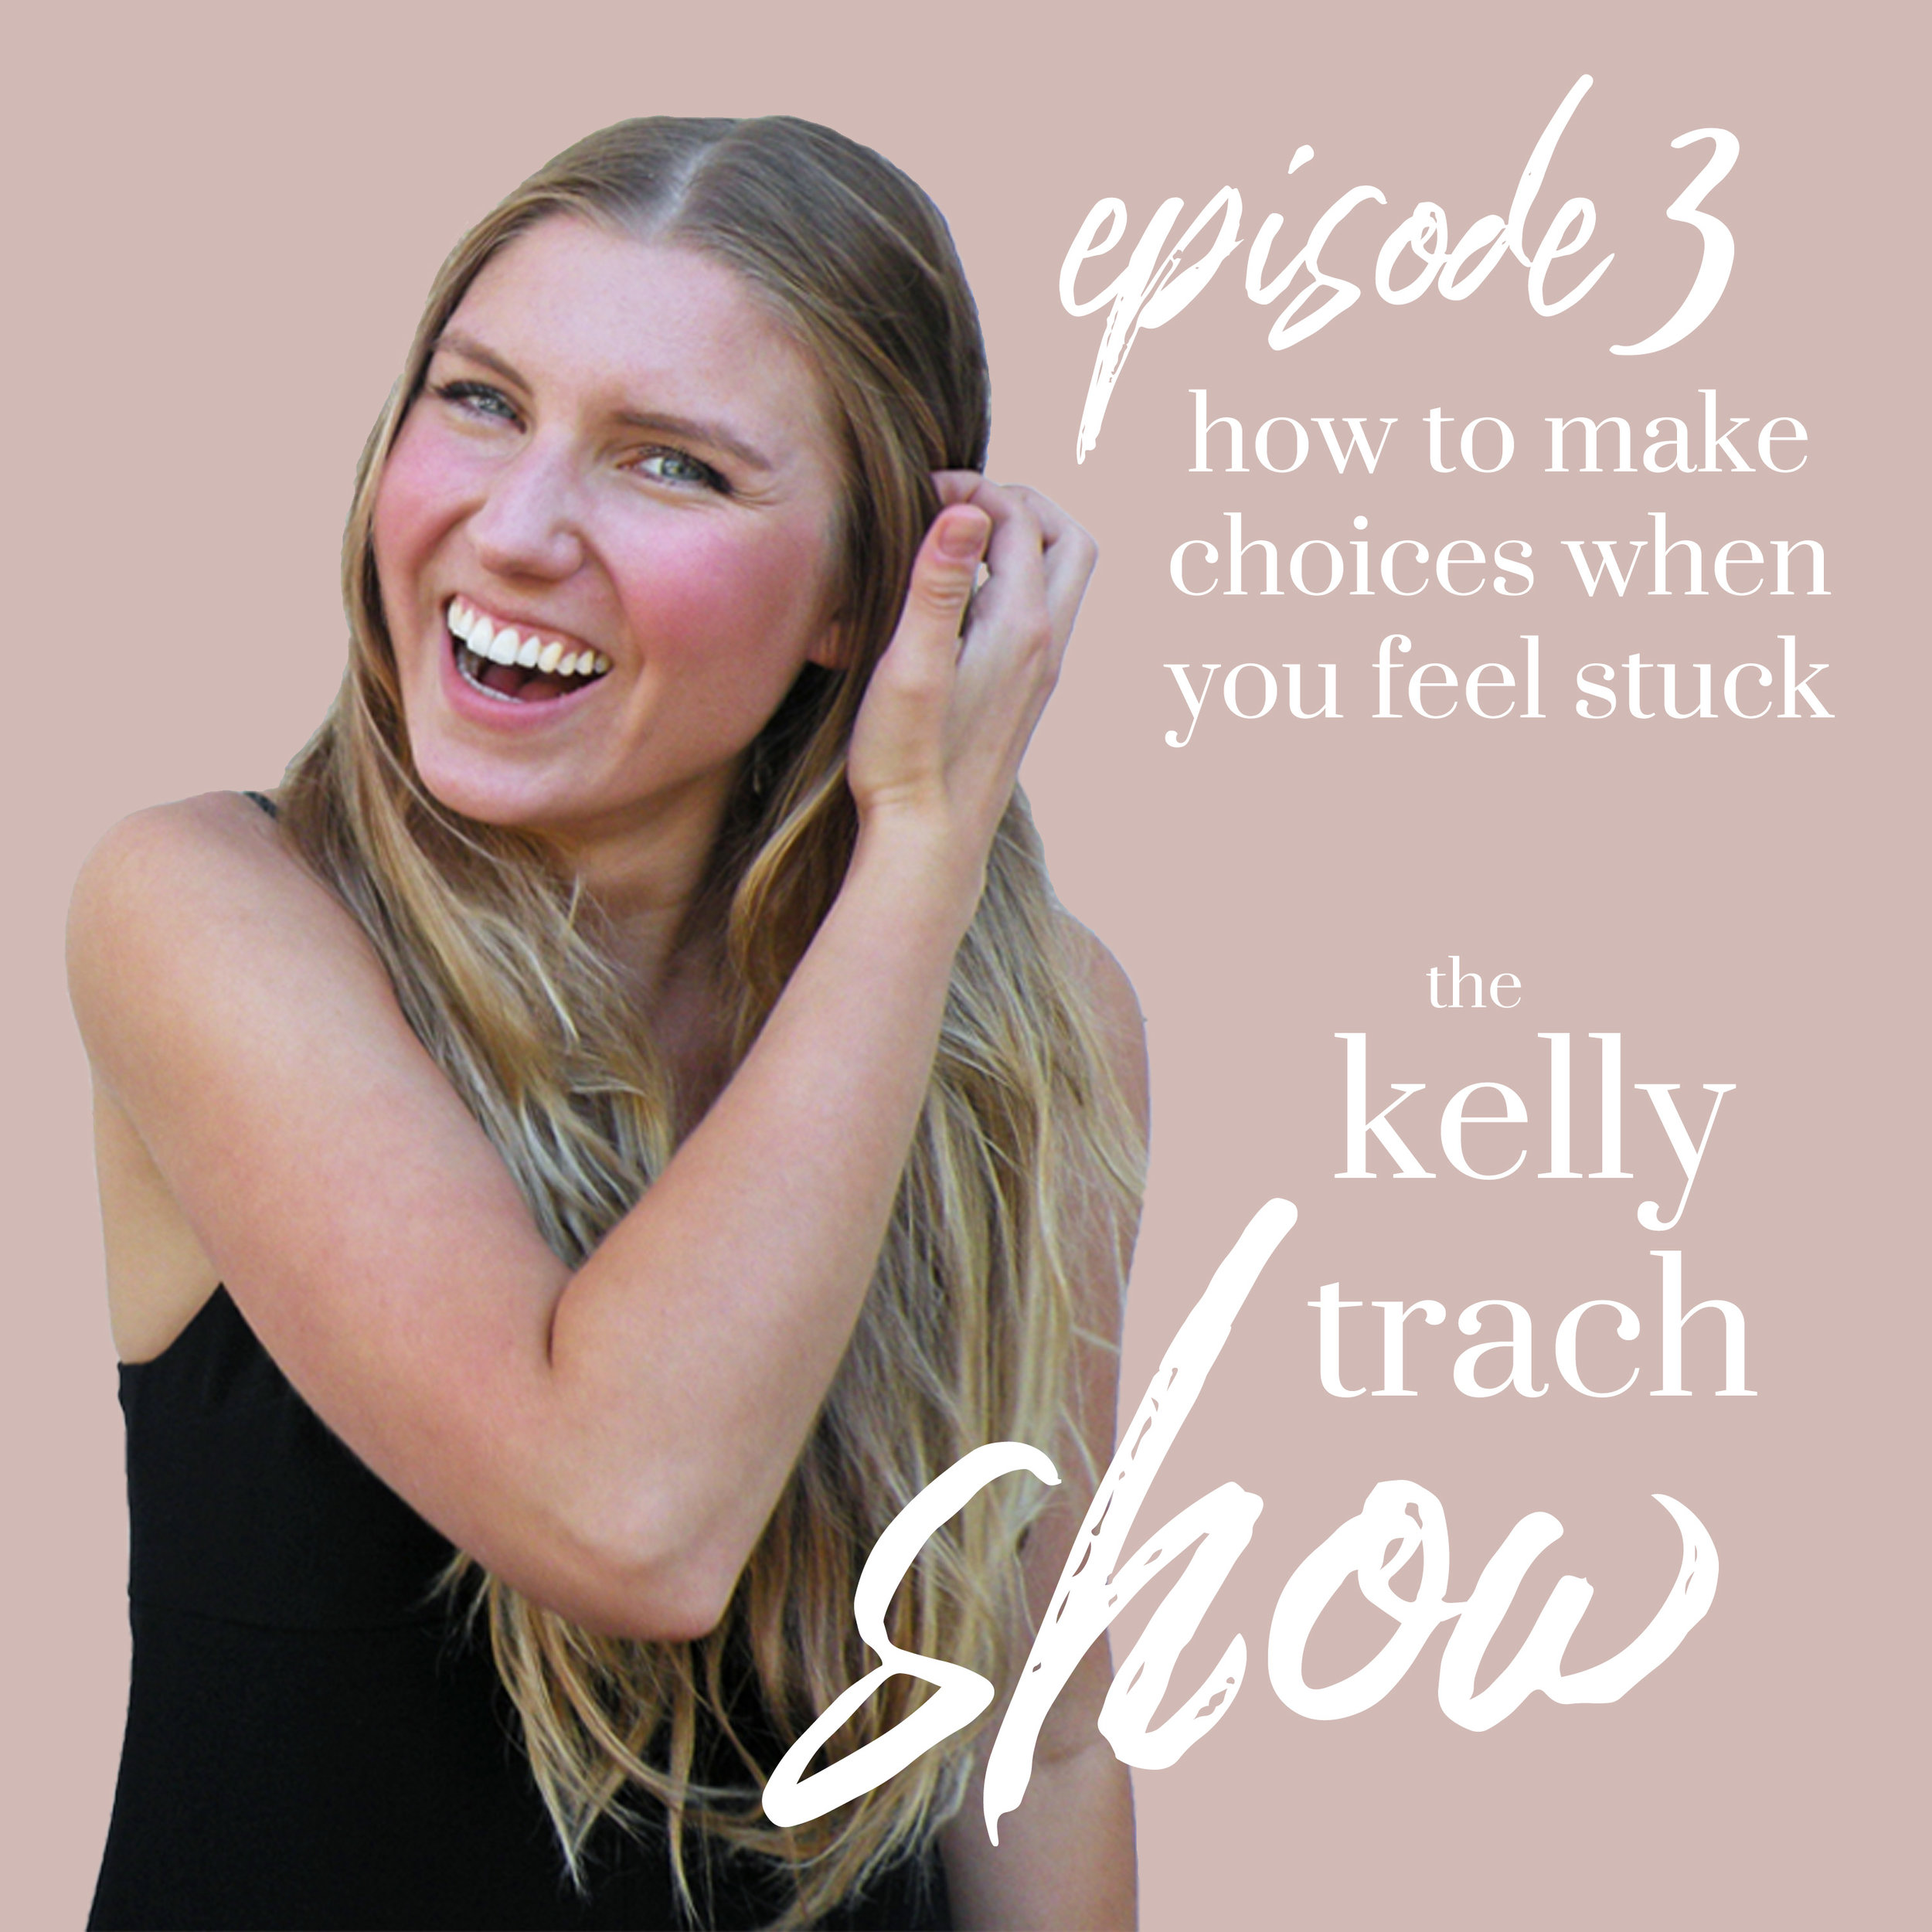 3 - How to Make Choices When You Feel Stuck - The Kelly Trach Show.jpg